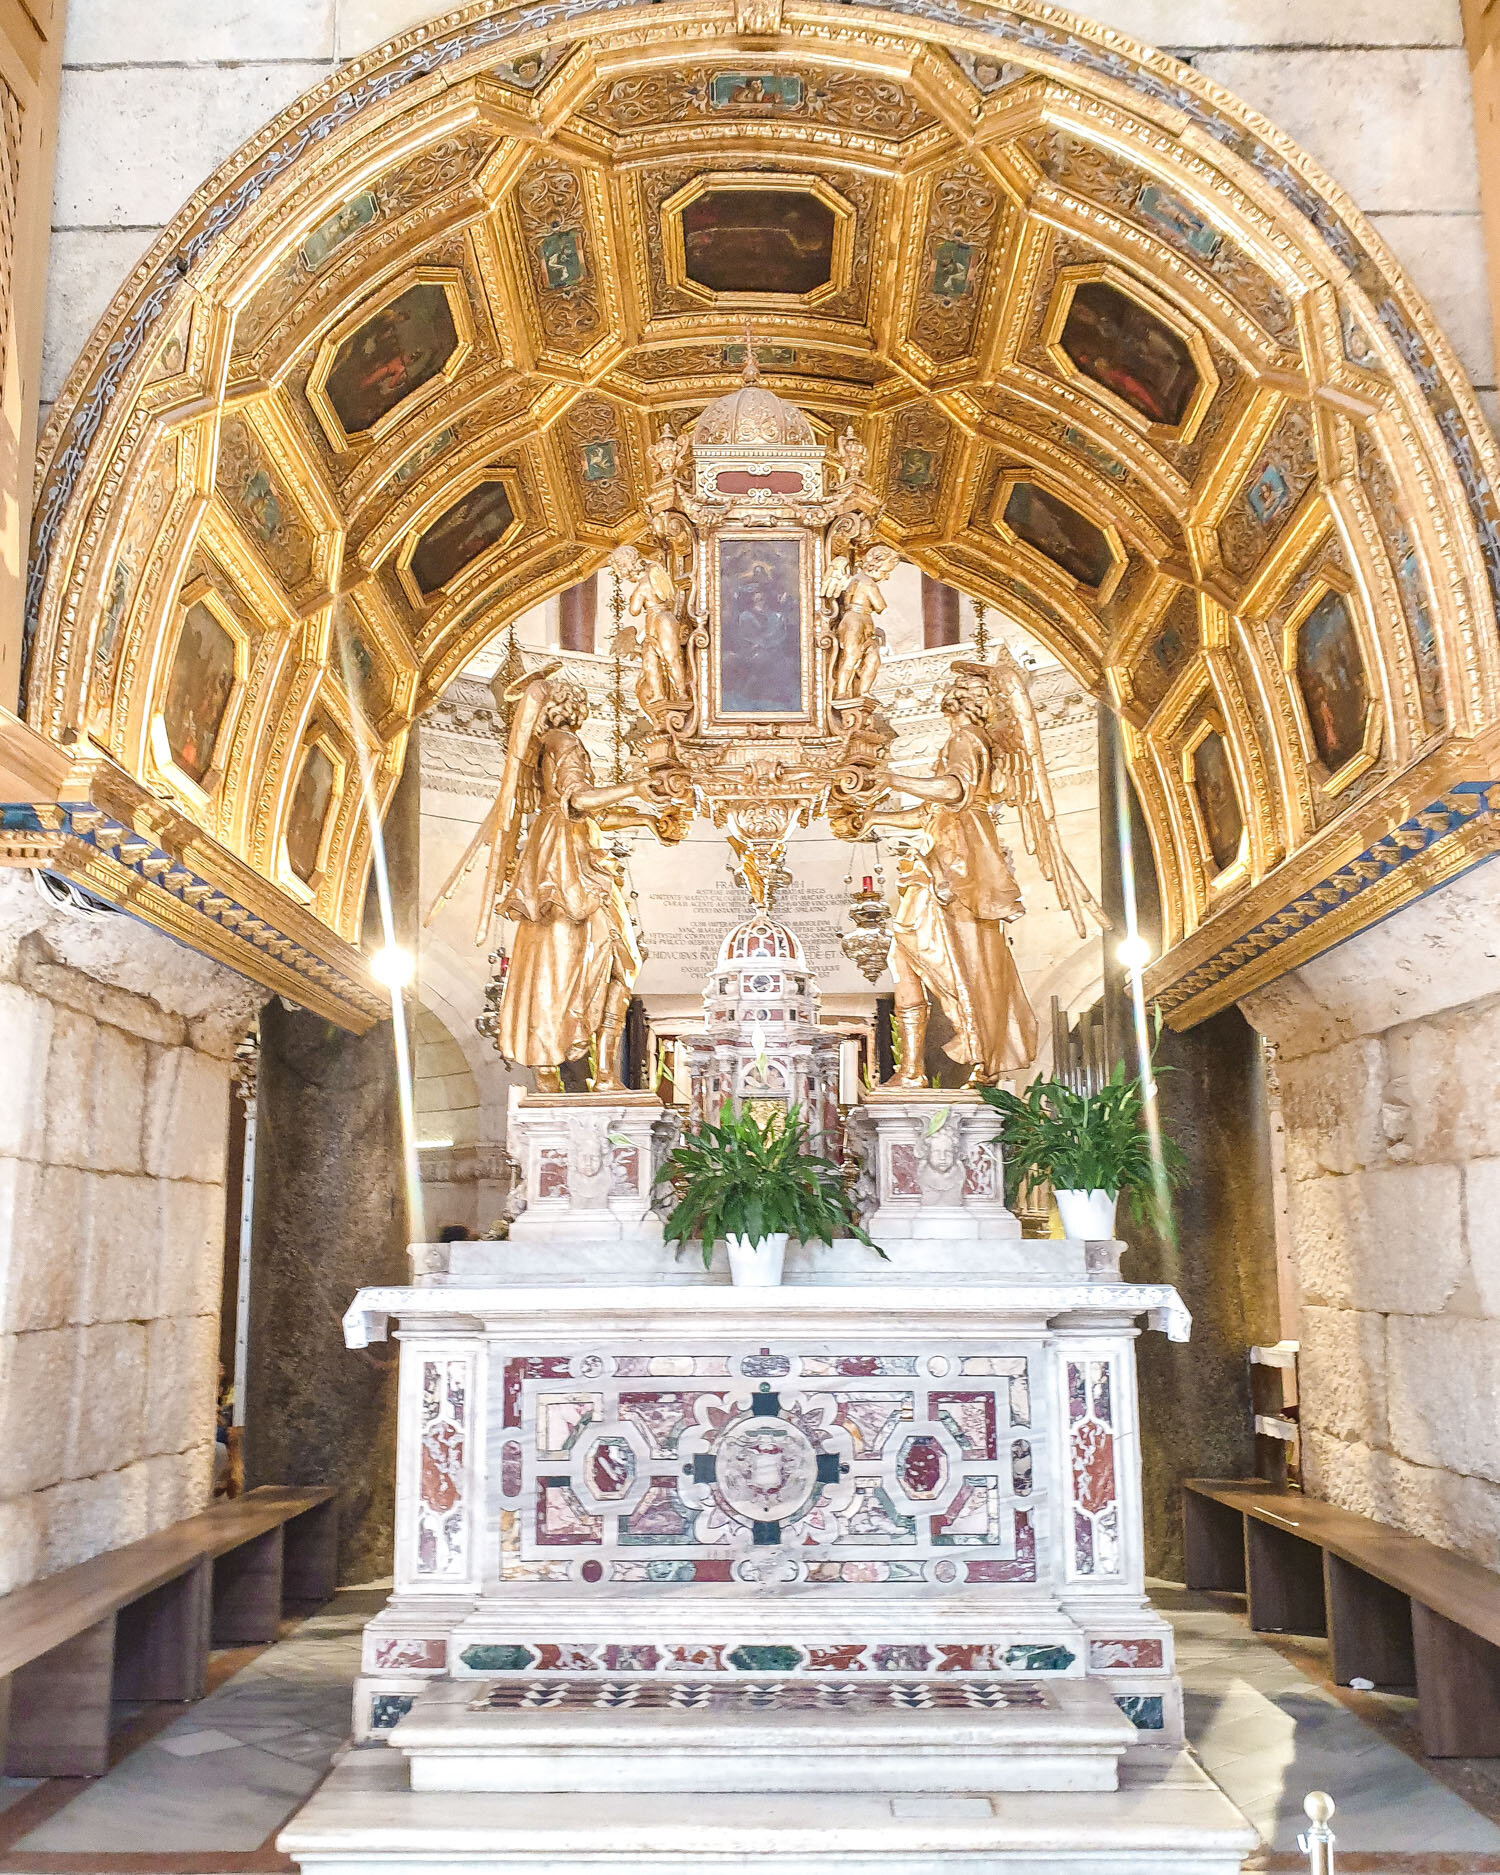 Inside the Cathedral of Saint Domnius